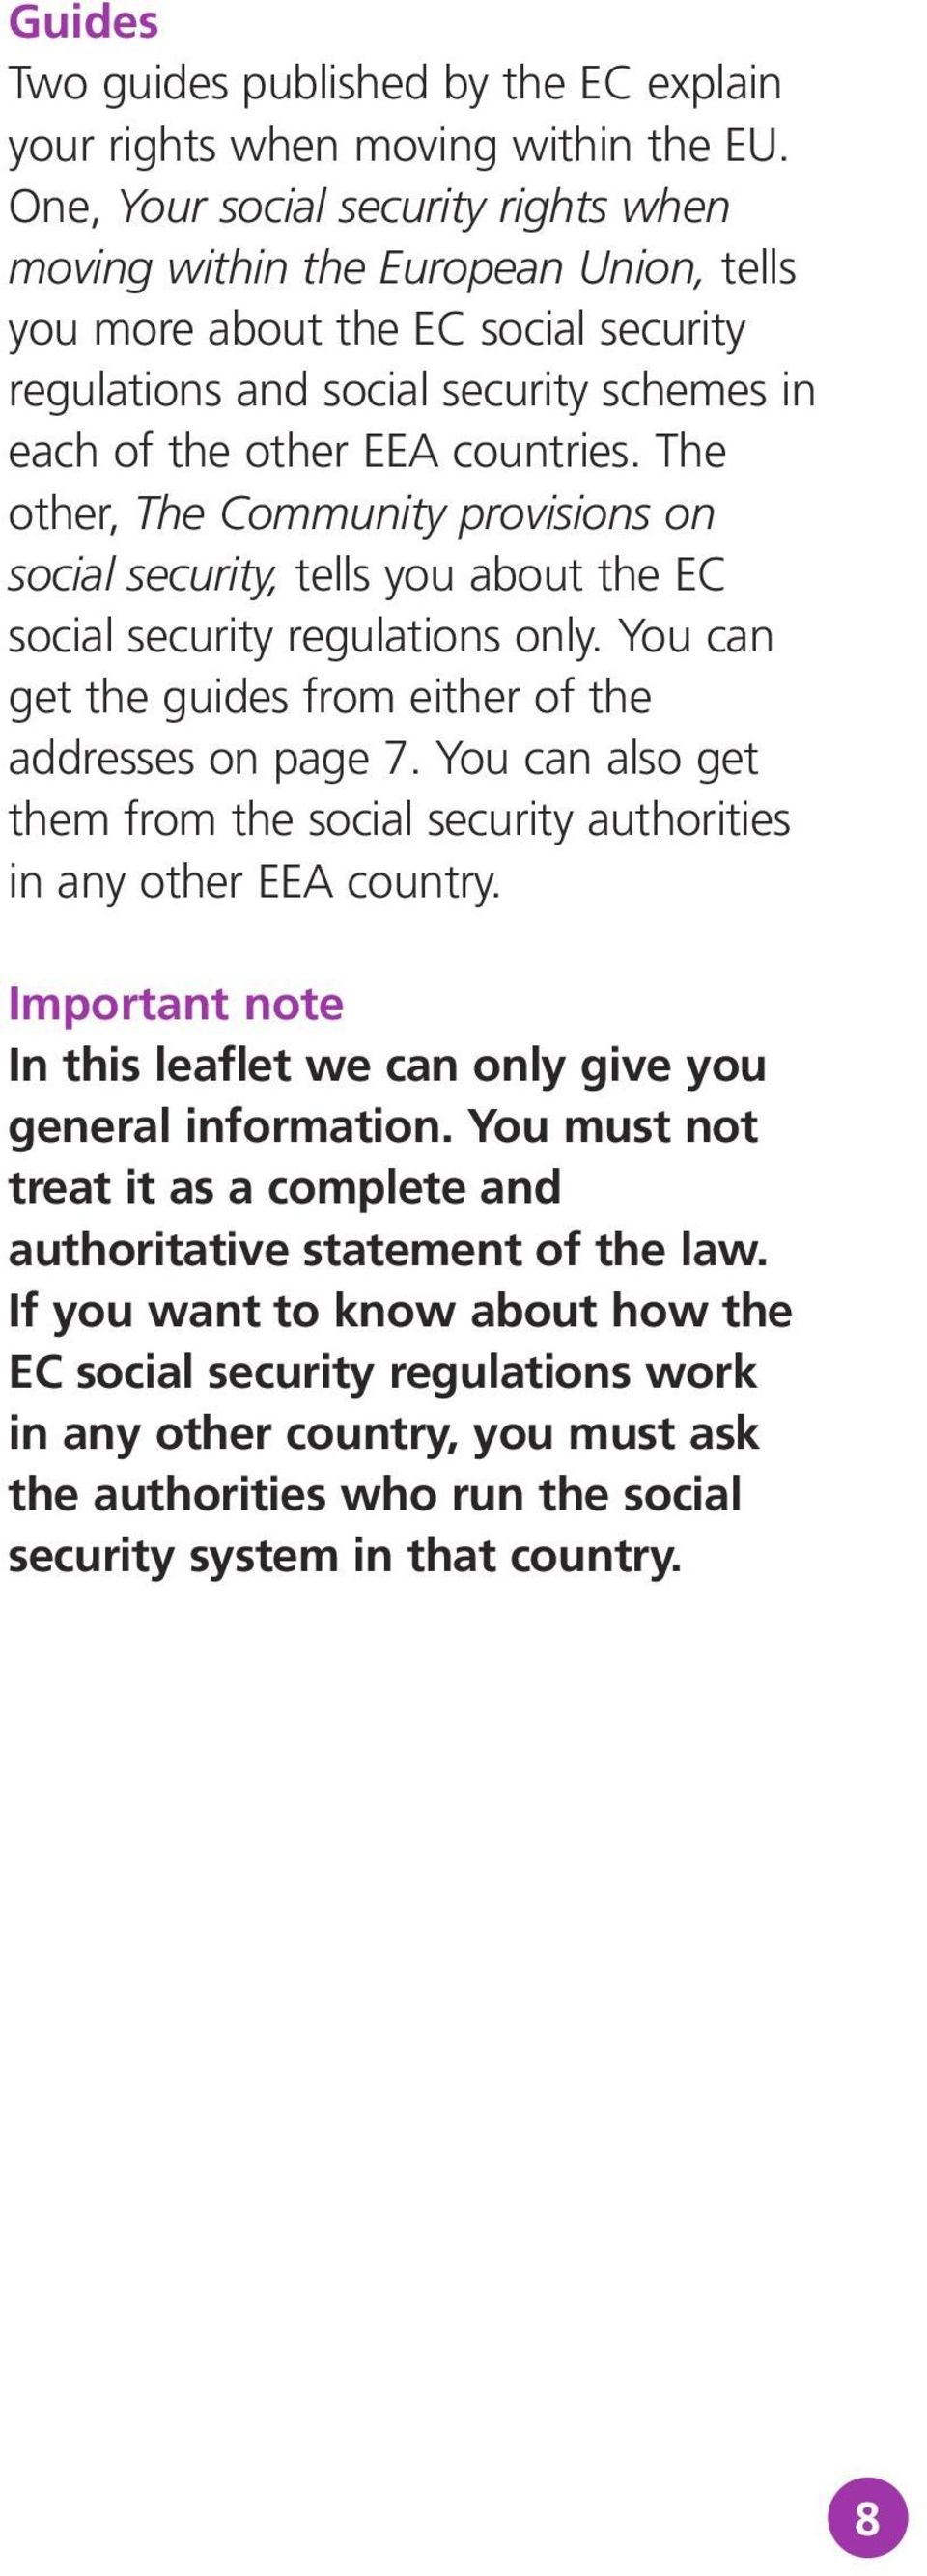 The other, The Community provisions on social security, tells you about the EC social security regulations only. You can get the guides from either of the addresses on page 7.